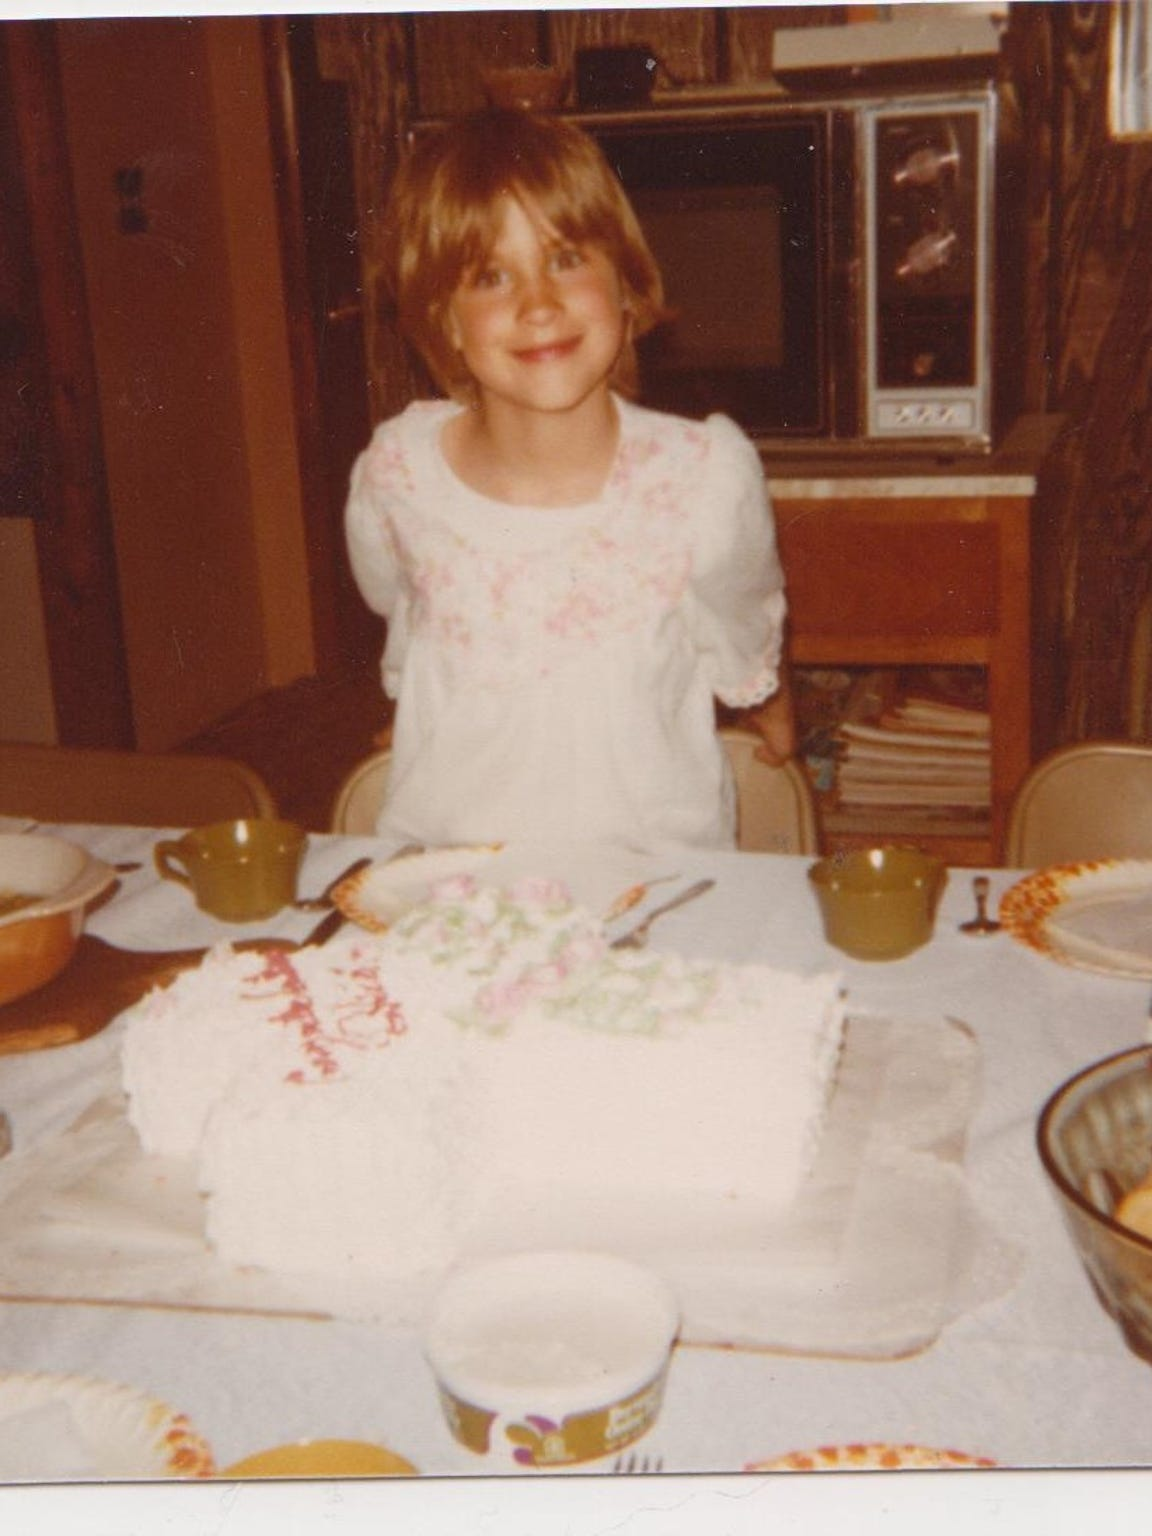 Heidi Wolfe, as a child, posing for a photo. Year unknown.